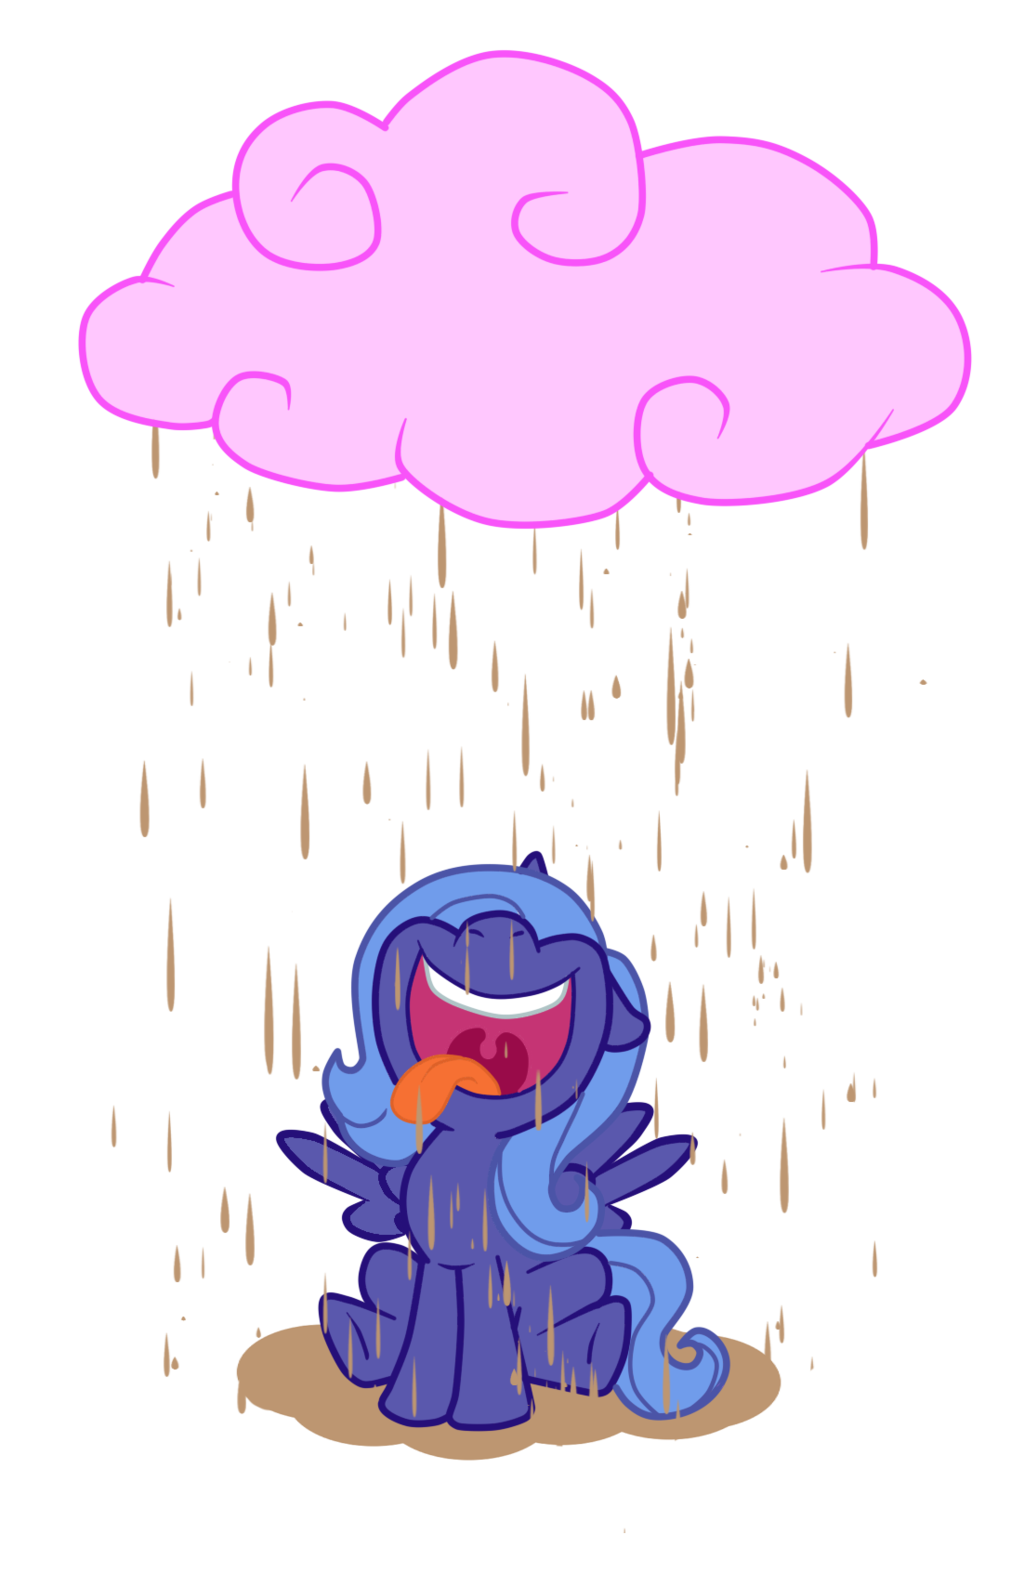 Chocolate rain by hendocrinogeno. Clouds clipart candy